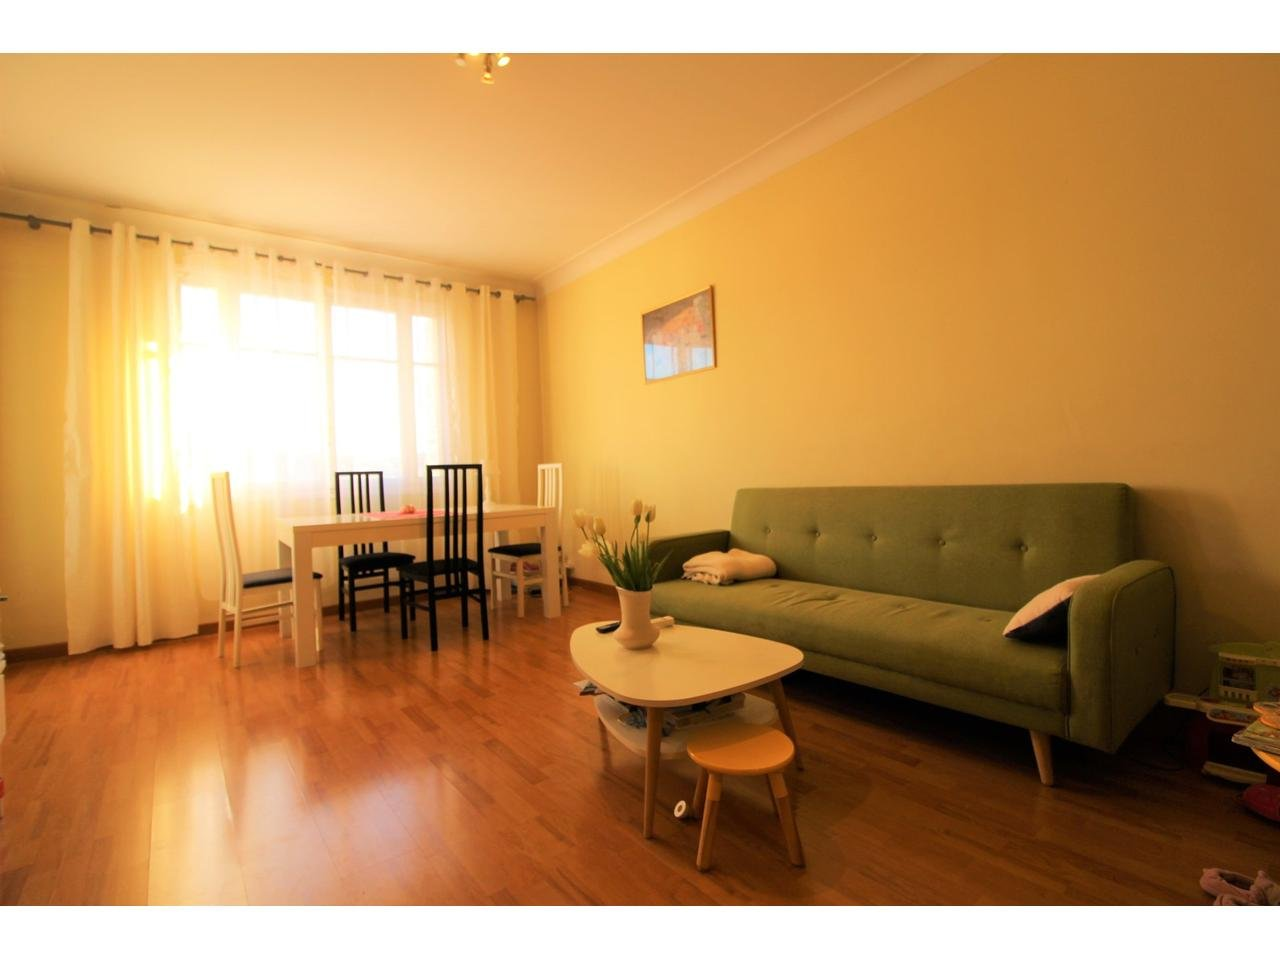 Appartement  2 Rooms 61m2  for sale   298 000 €